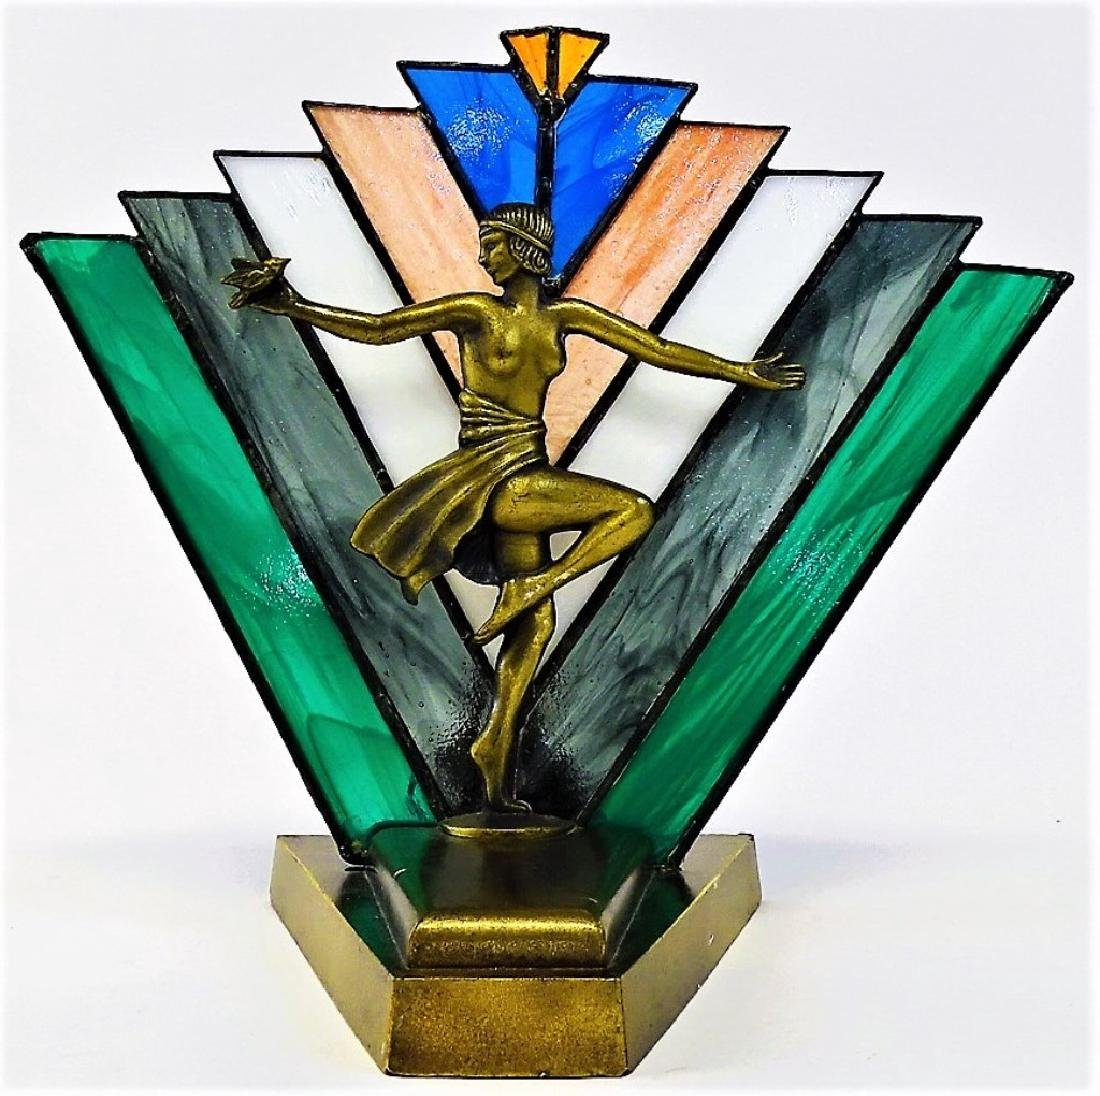 ART DECO REVIVAL PEACE MOOD LAMP WITH NUDE